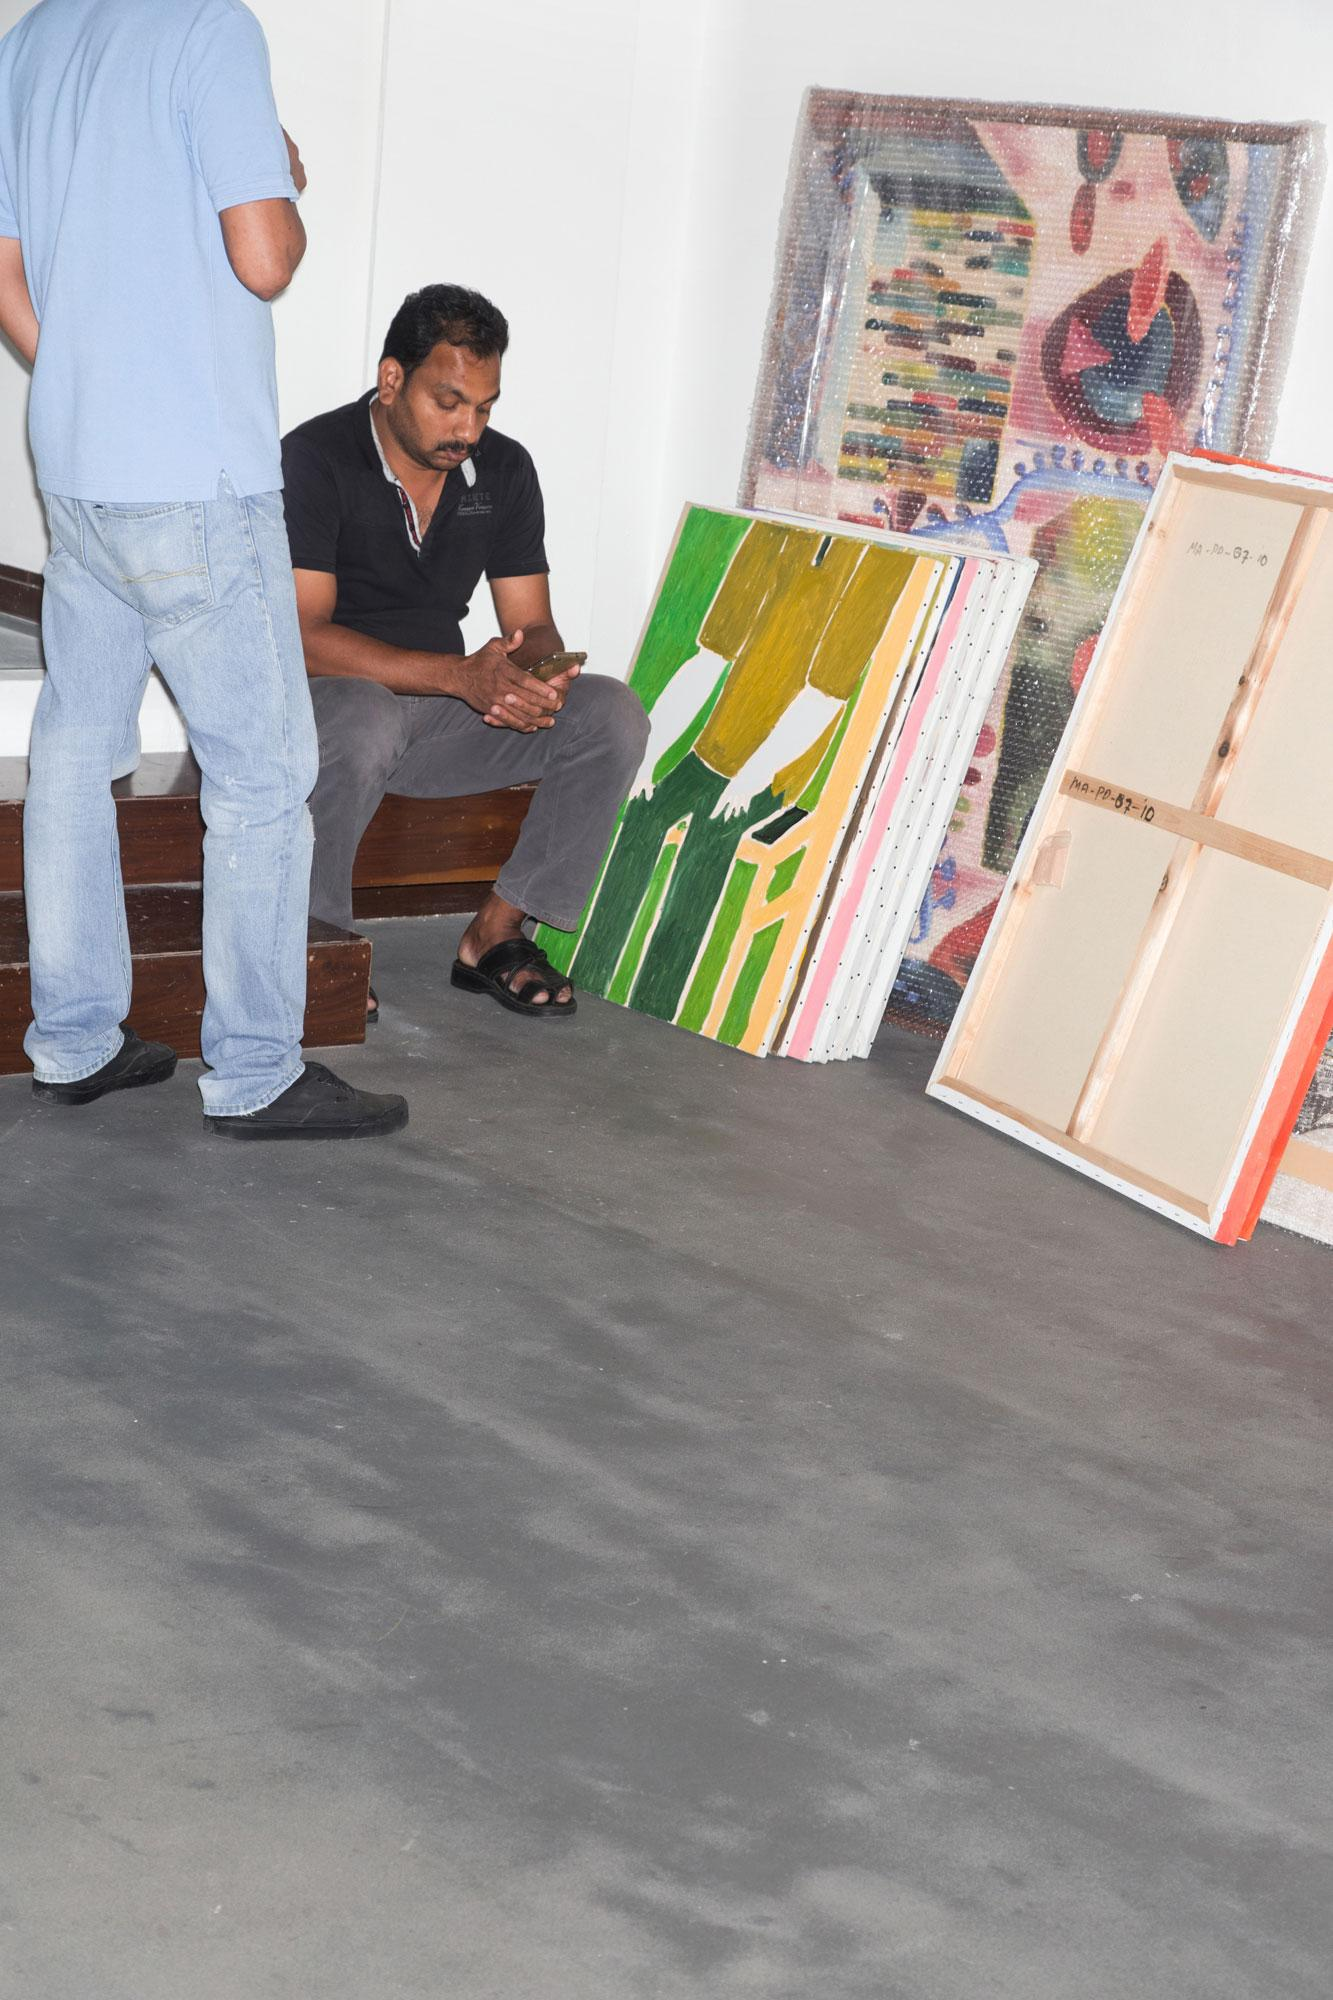 Installing Mohammed Ahmed Ibrahim's exhibition /Primordial II/atCuadro  gallery